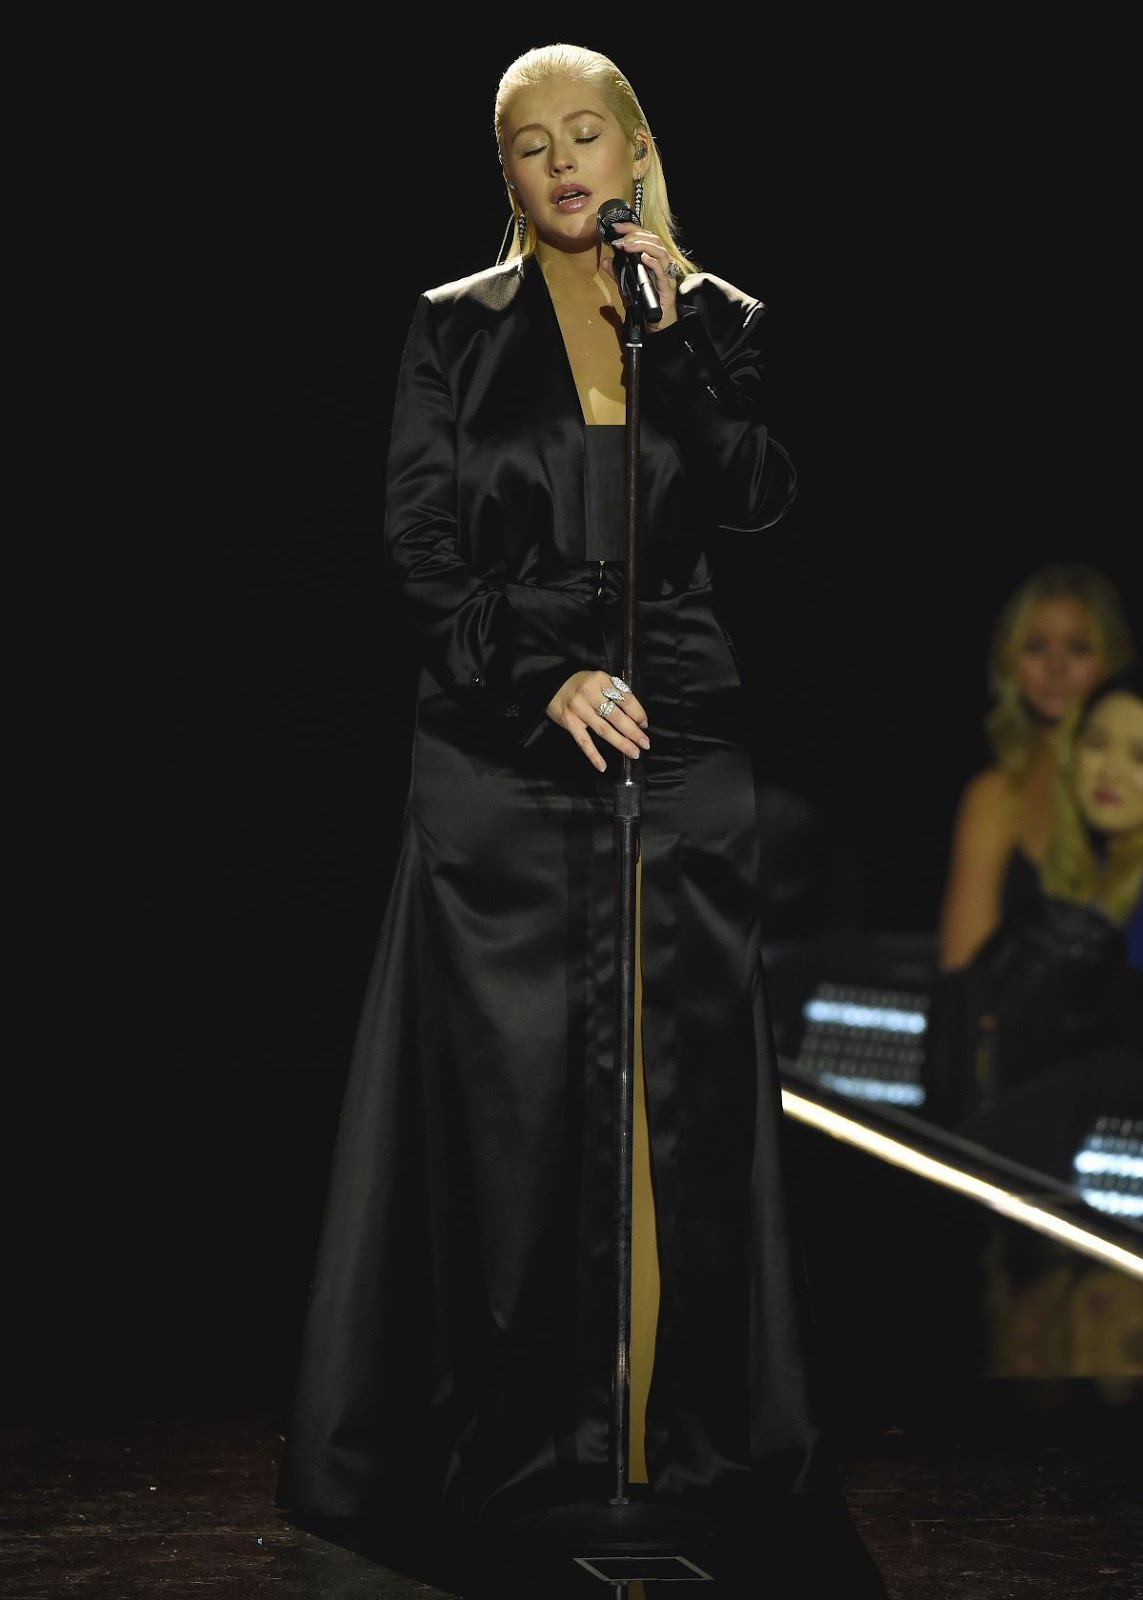 Photos of Christina Aguilera Performs at 2017 American Music Awards in Los Angeles